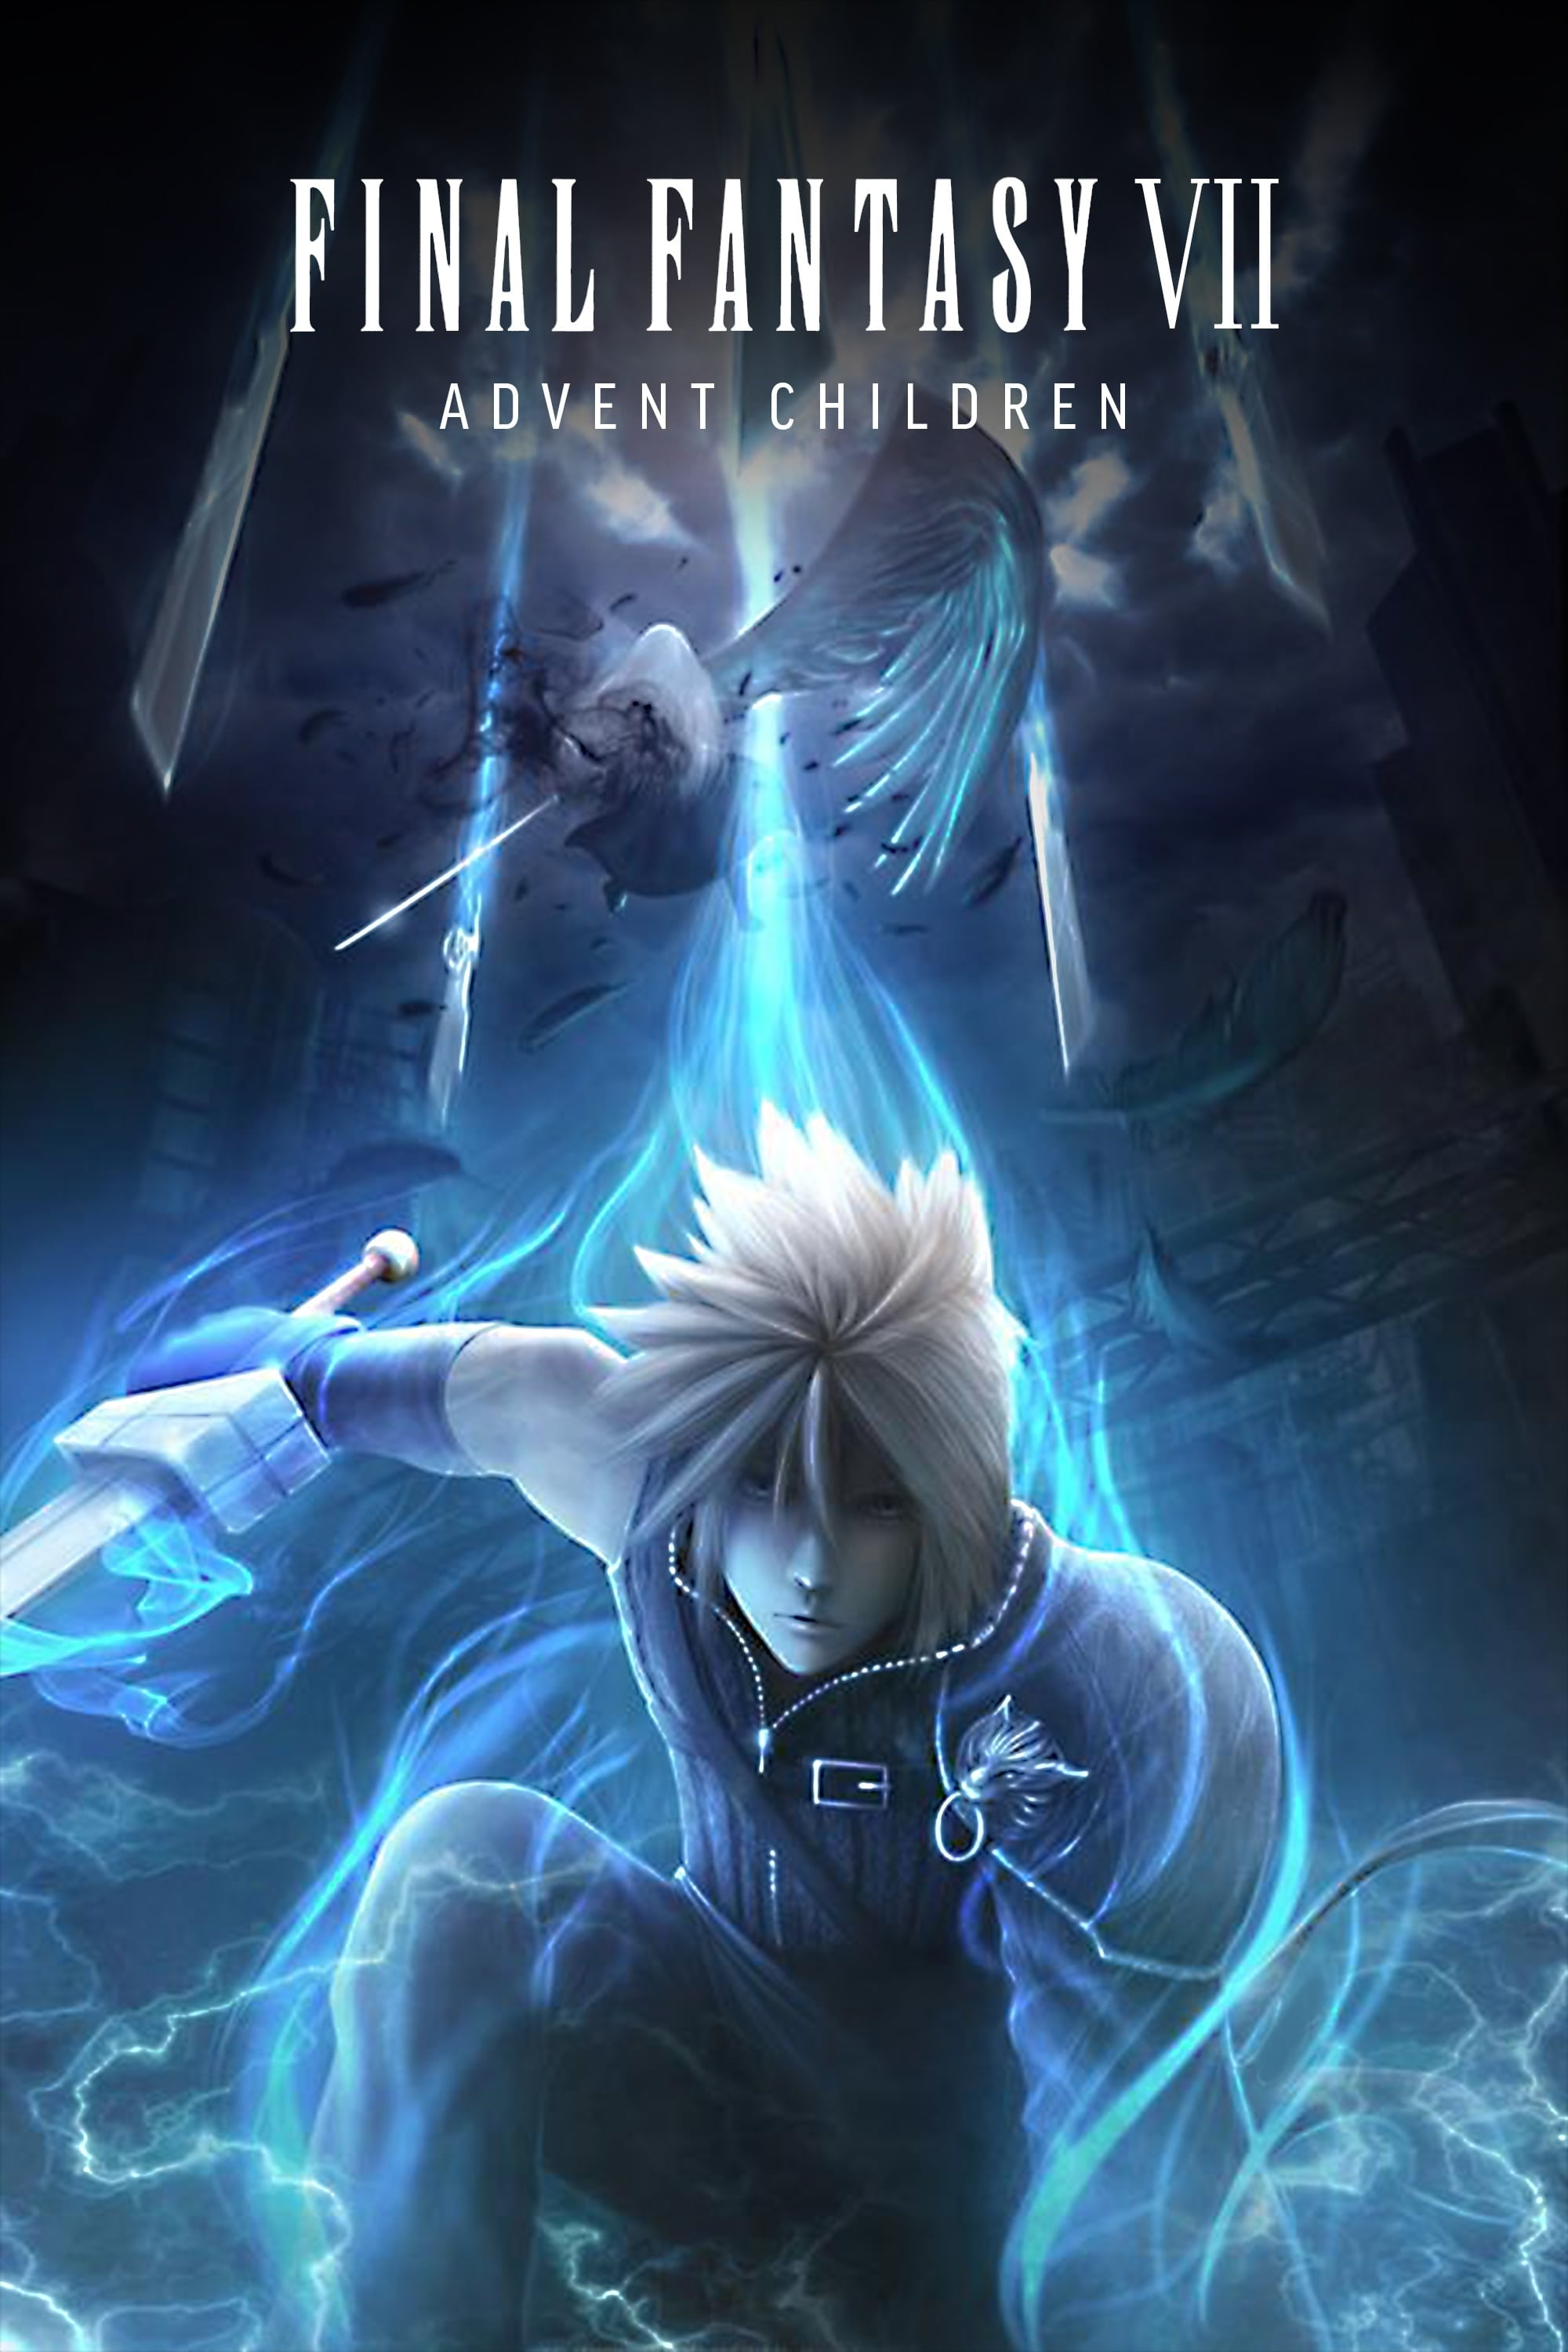 Final Fantasy Vii Advent Children 2005 Posters The Movie